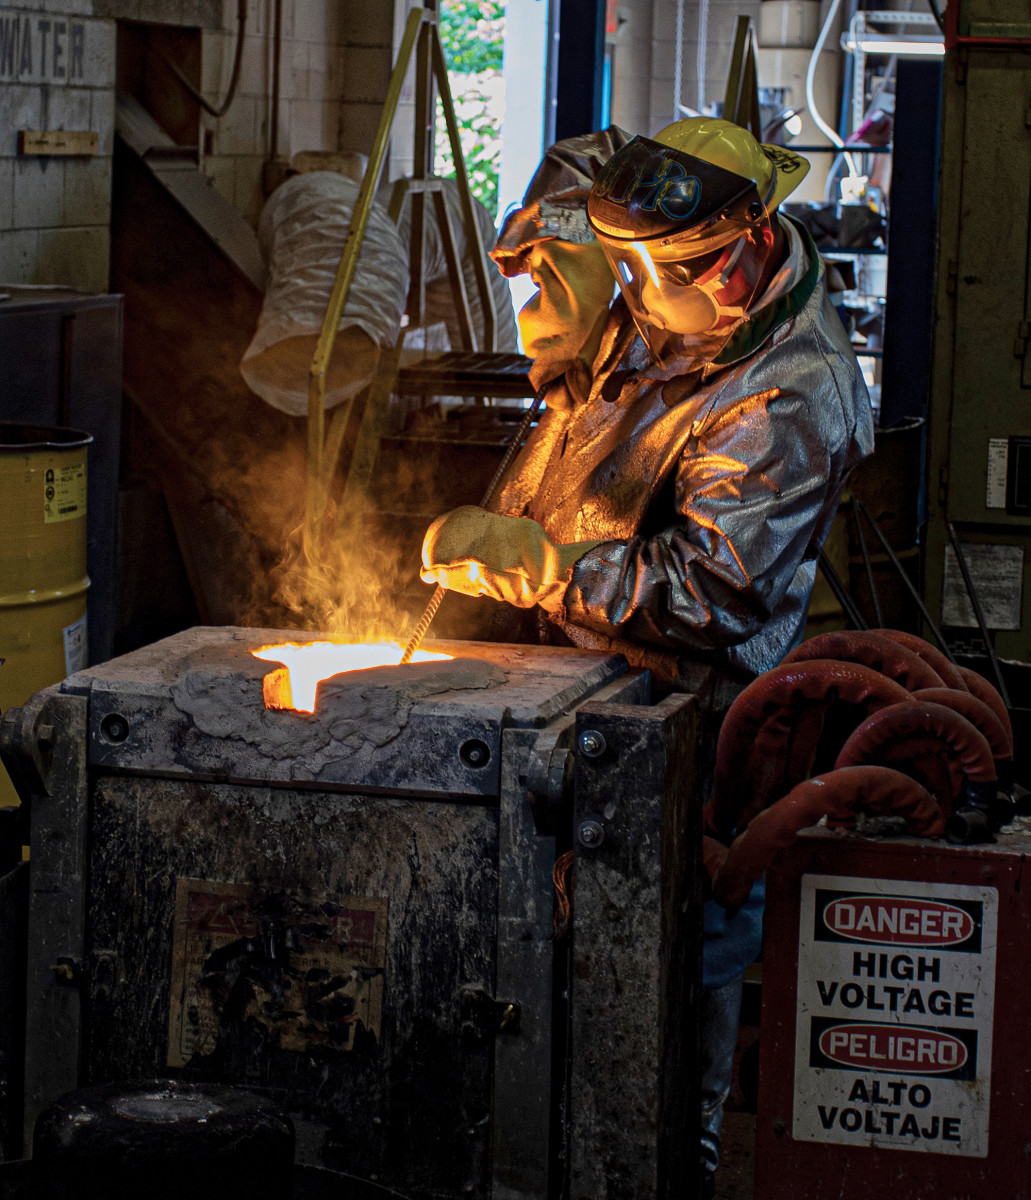 Stainless-steel alloy is melted to nearly 3,000 degrees before pouring.